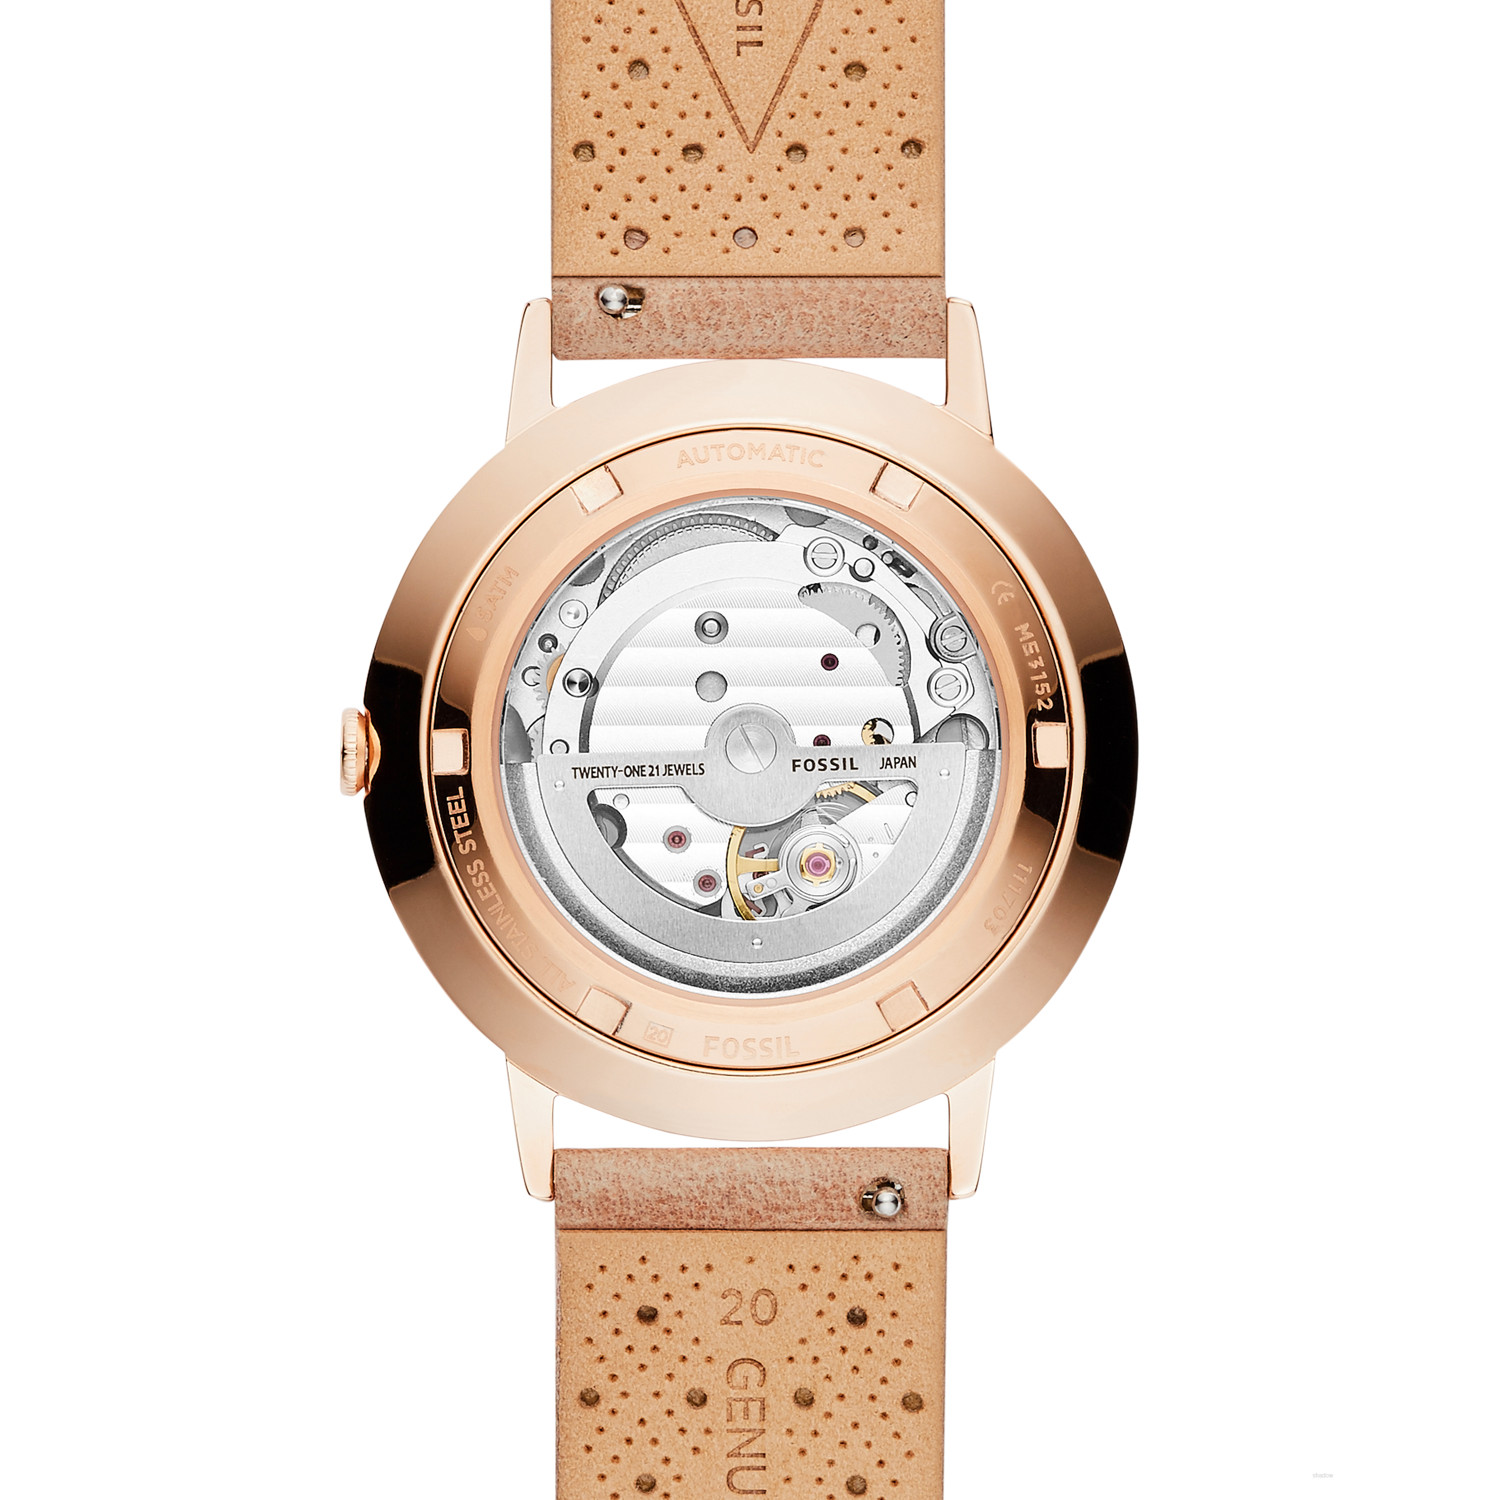 collections of watches sand virtual pointe watch sandi library